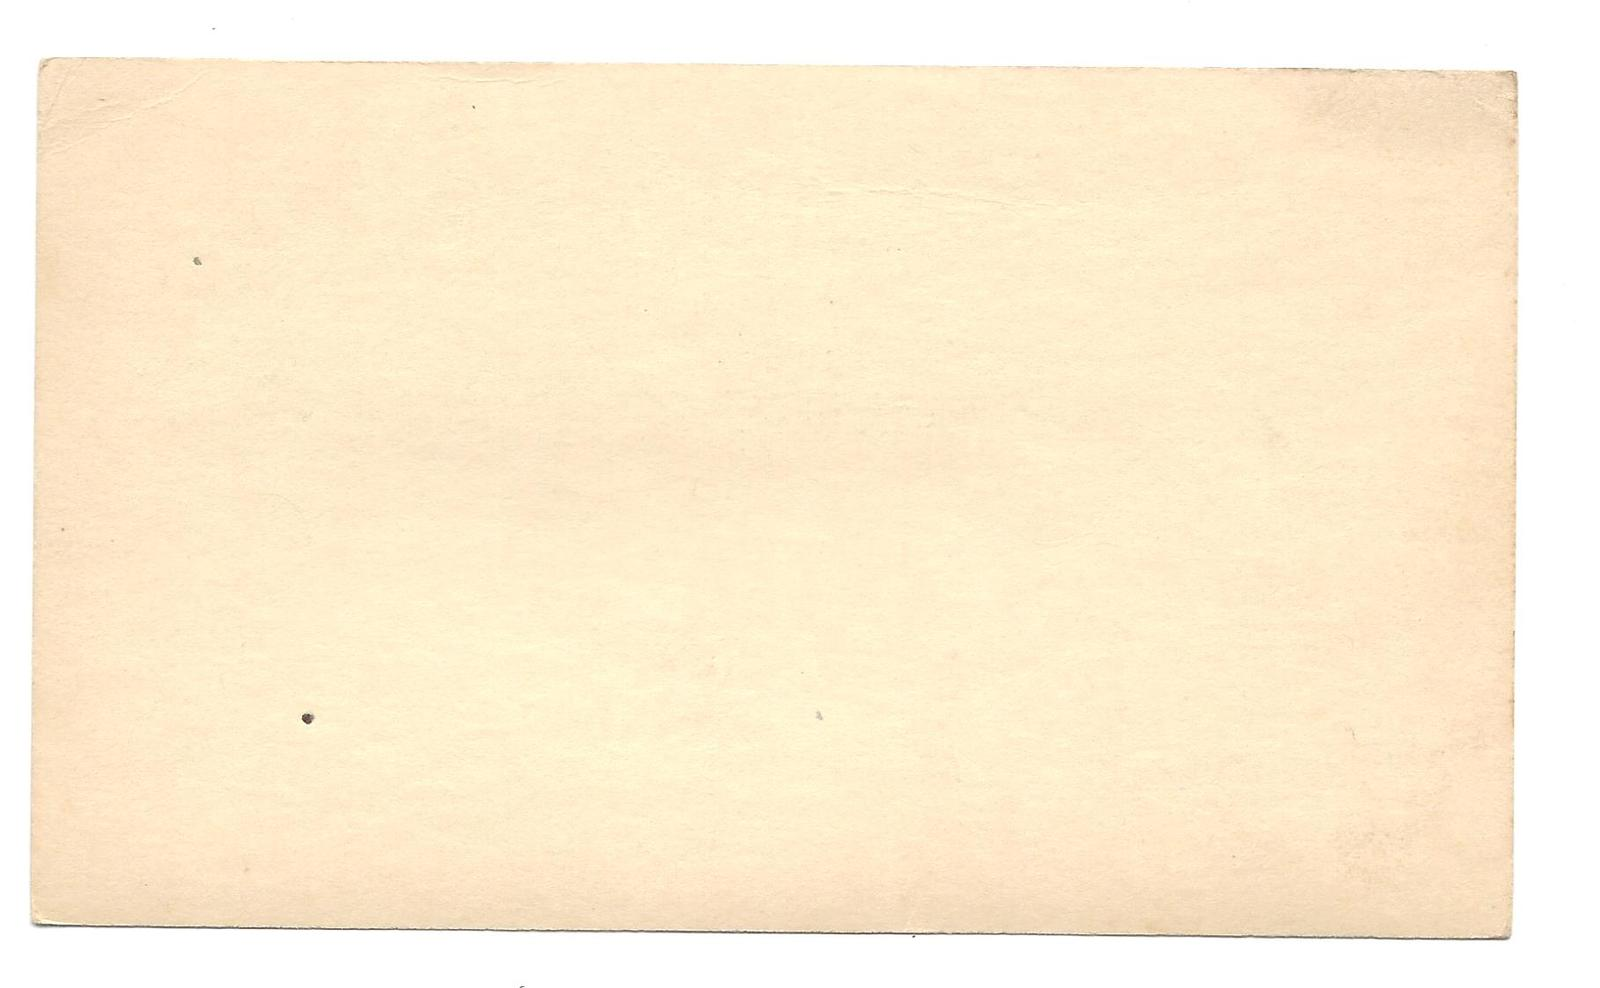 Naval Cancel USS Orleck DD 886 CIPEX Poster Stamp 1947 Tied to UX27 Postal Card